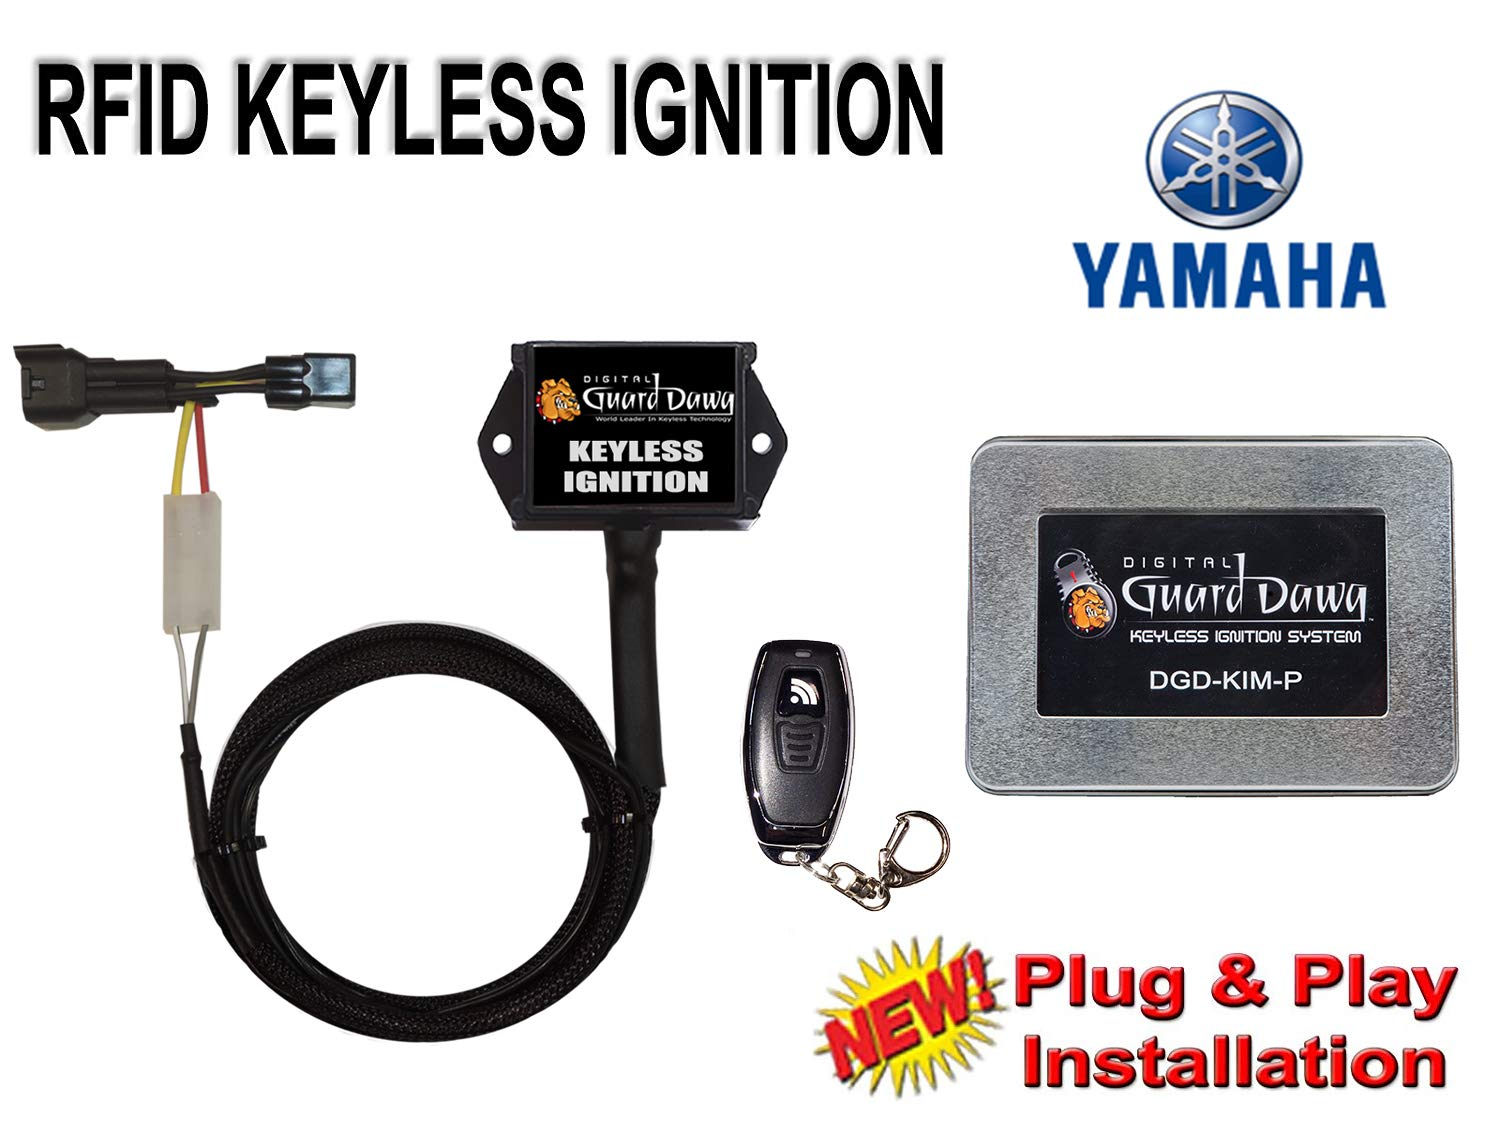 Keyless Ignition for Yamaha-FZ 09 2014-2018 by Digital Guard Dawg (Image #1)